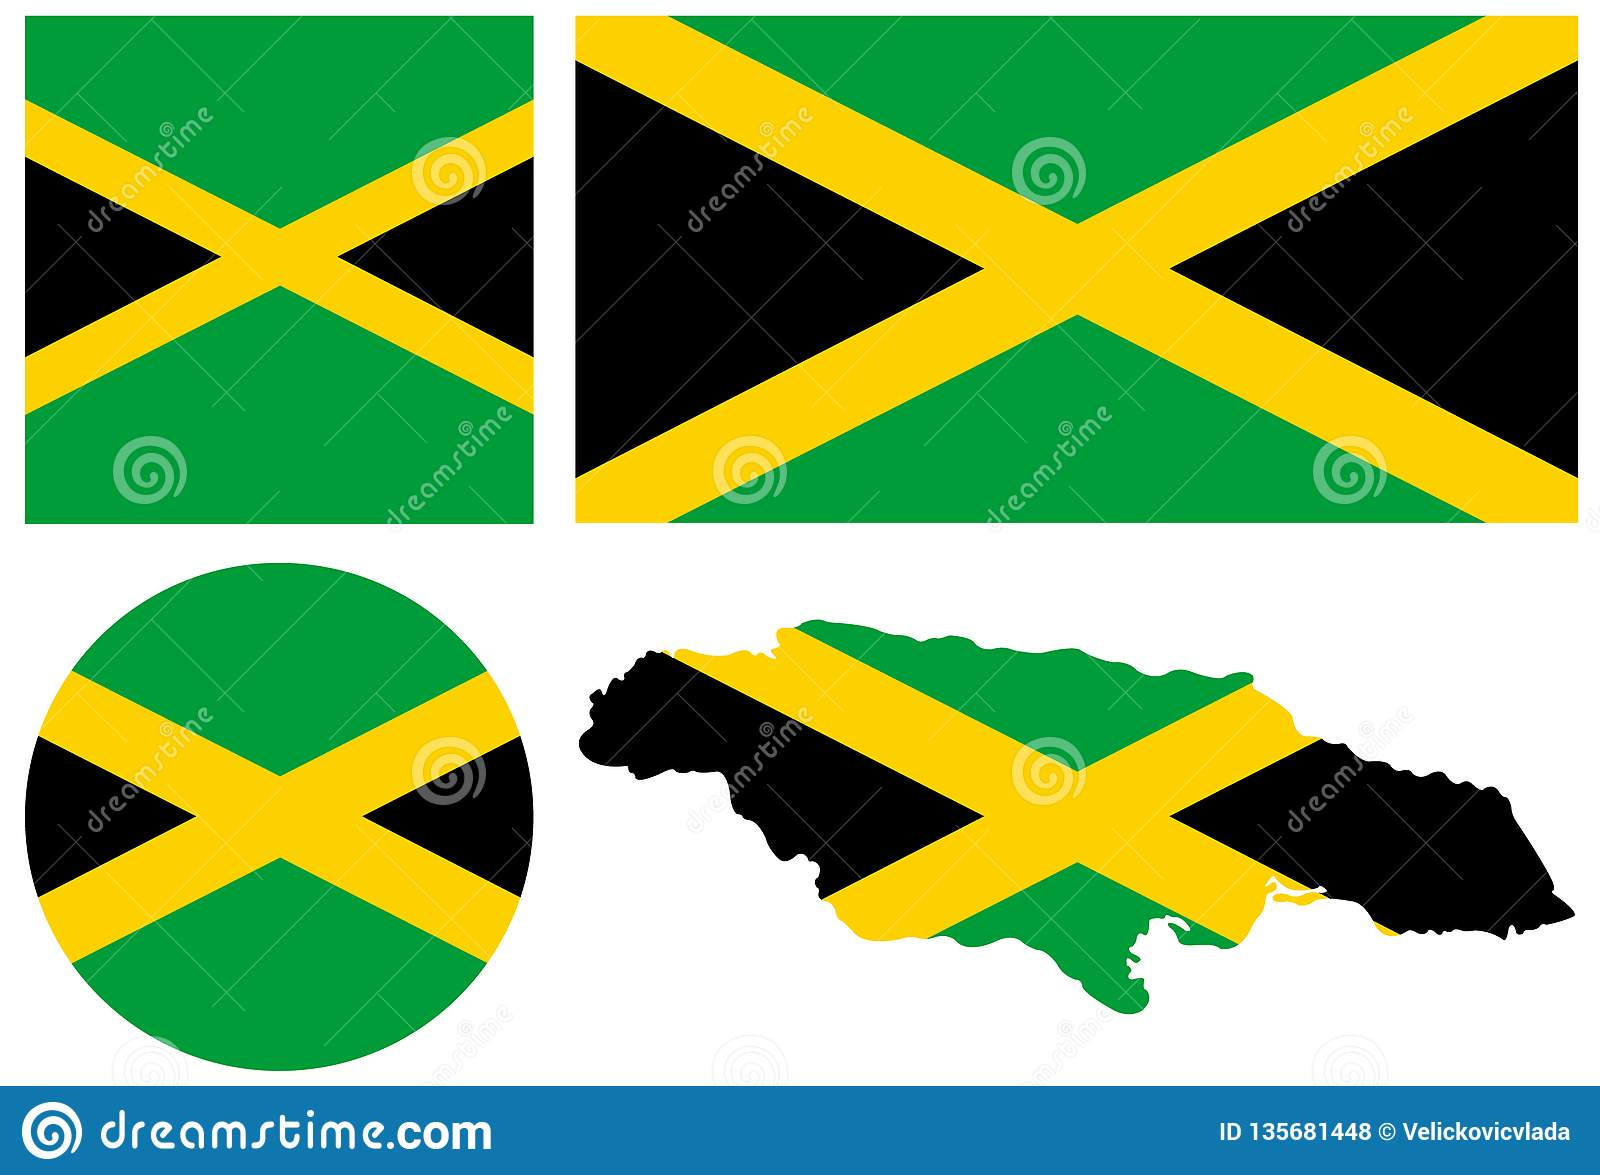 Jamaica flag and map - island country situated in the Caribbean Sea